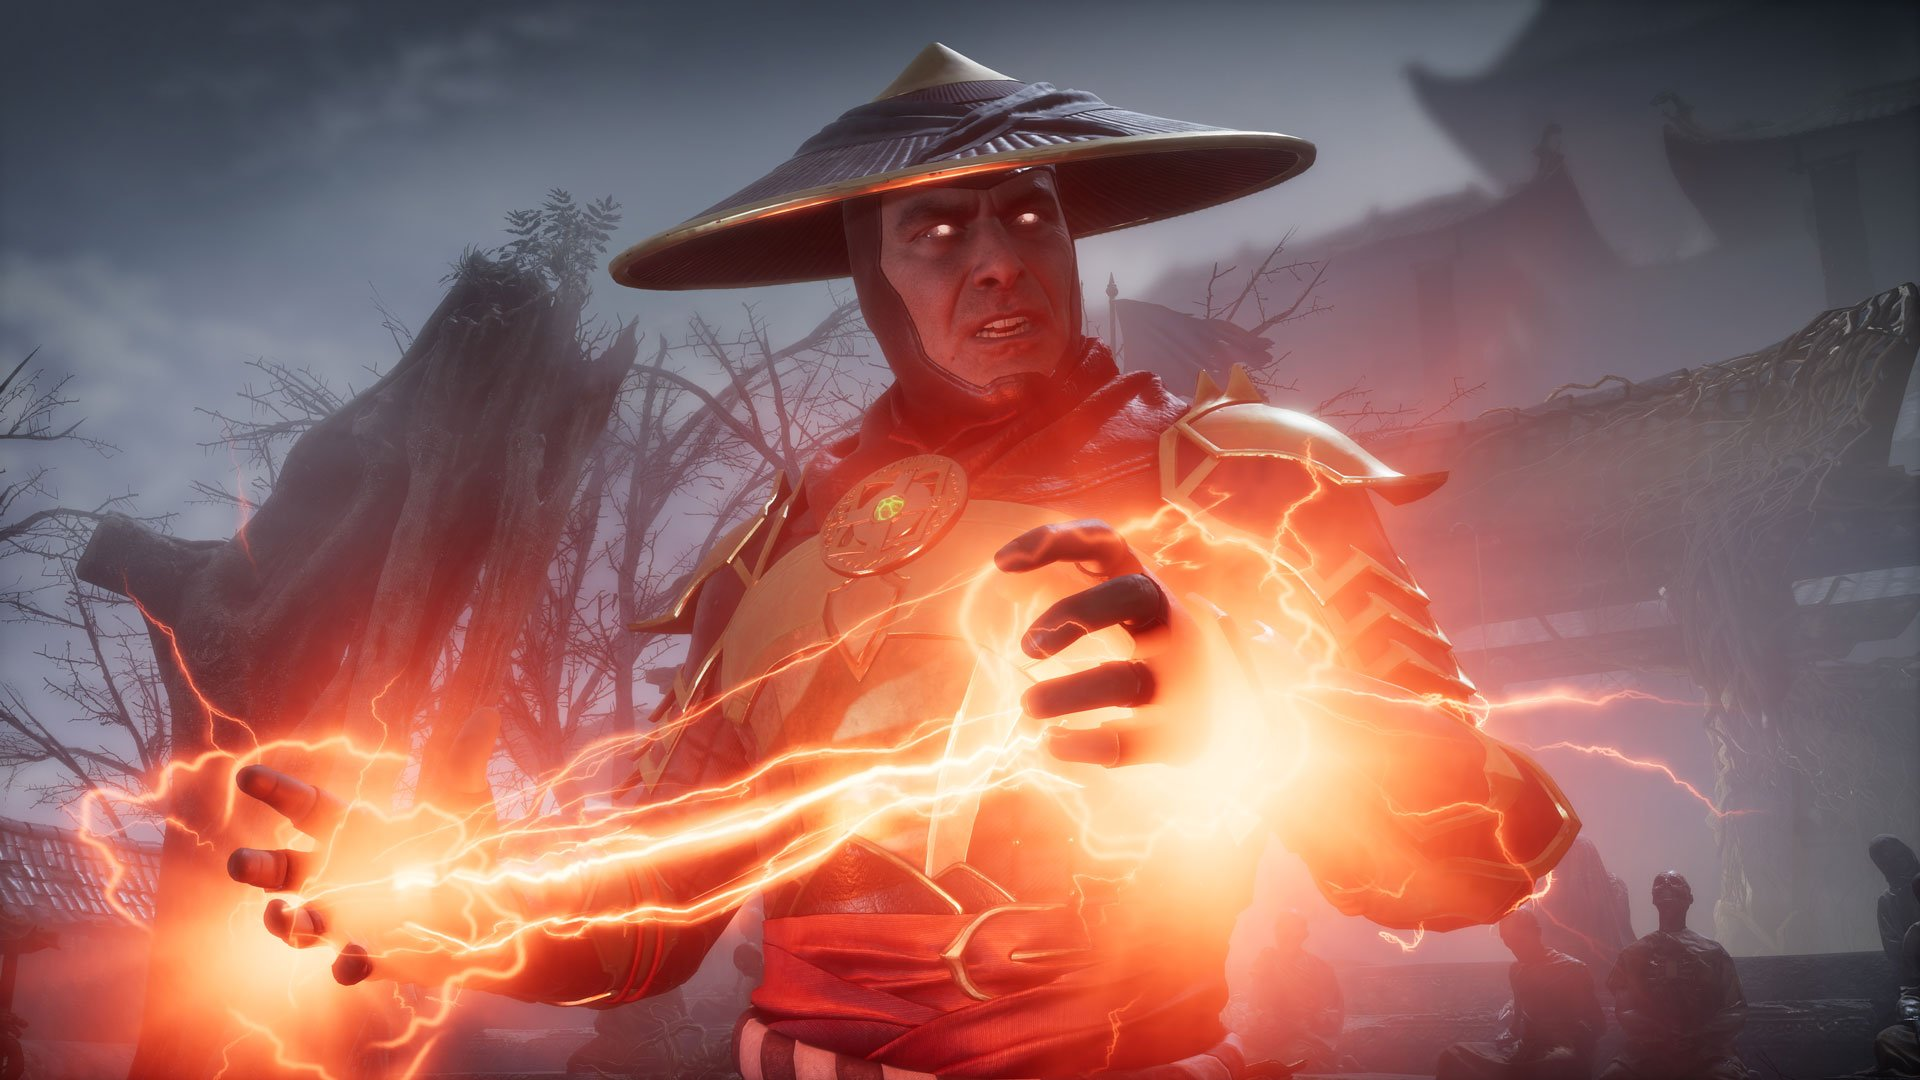 A list of all Fatalities available for each character in Mortal Kombat 11.